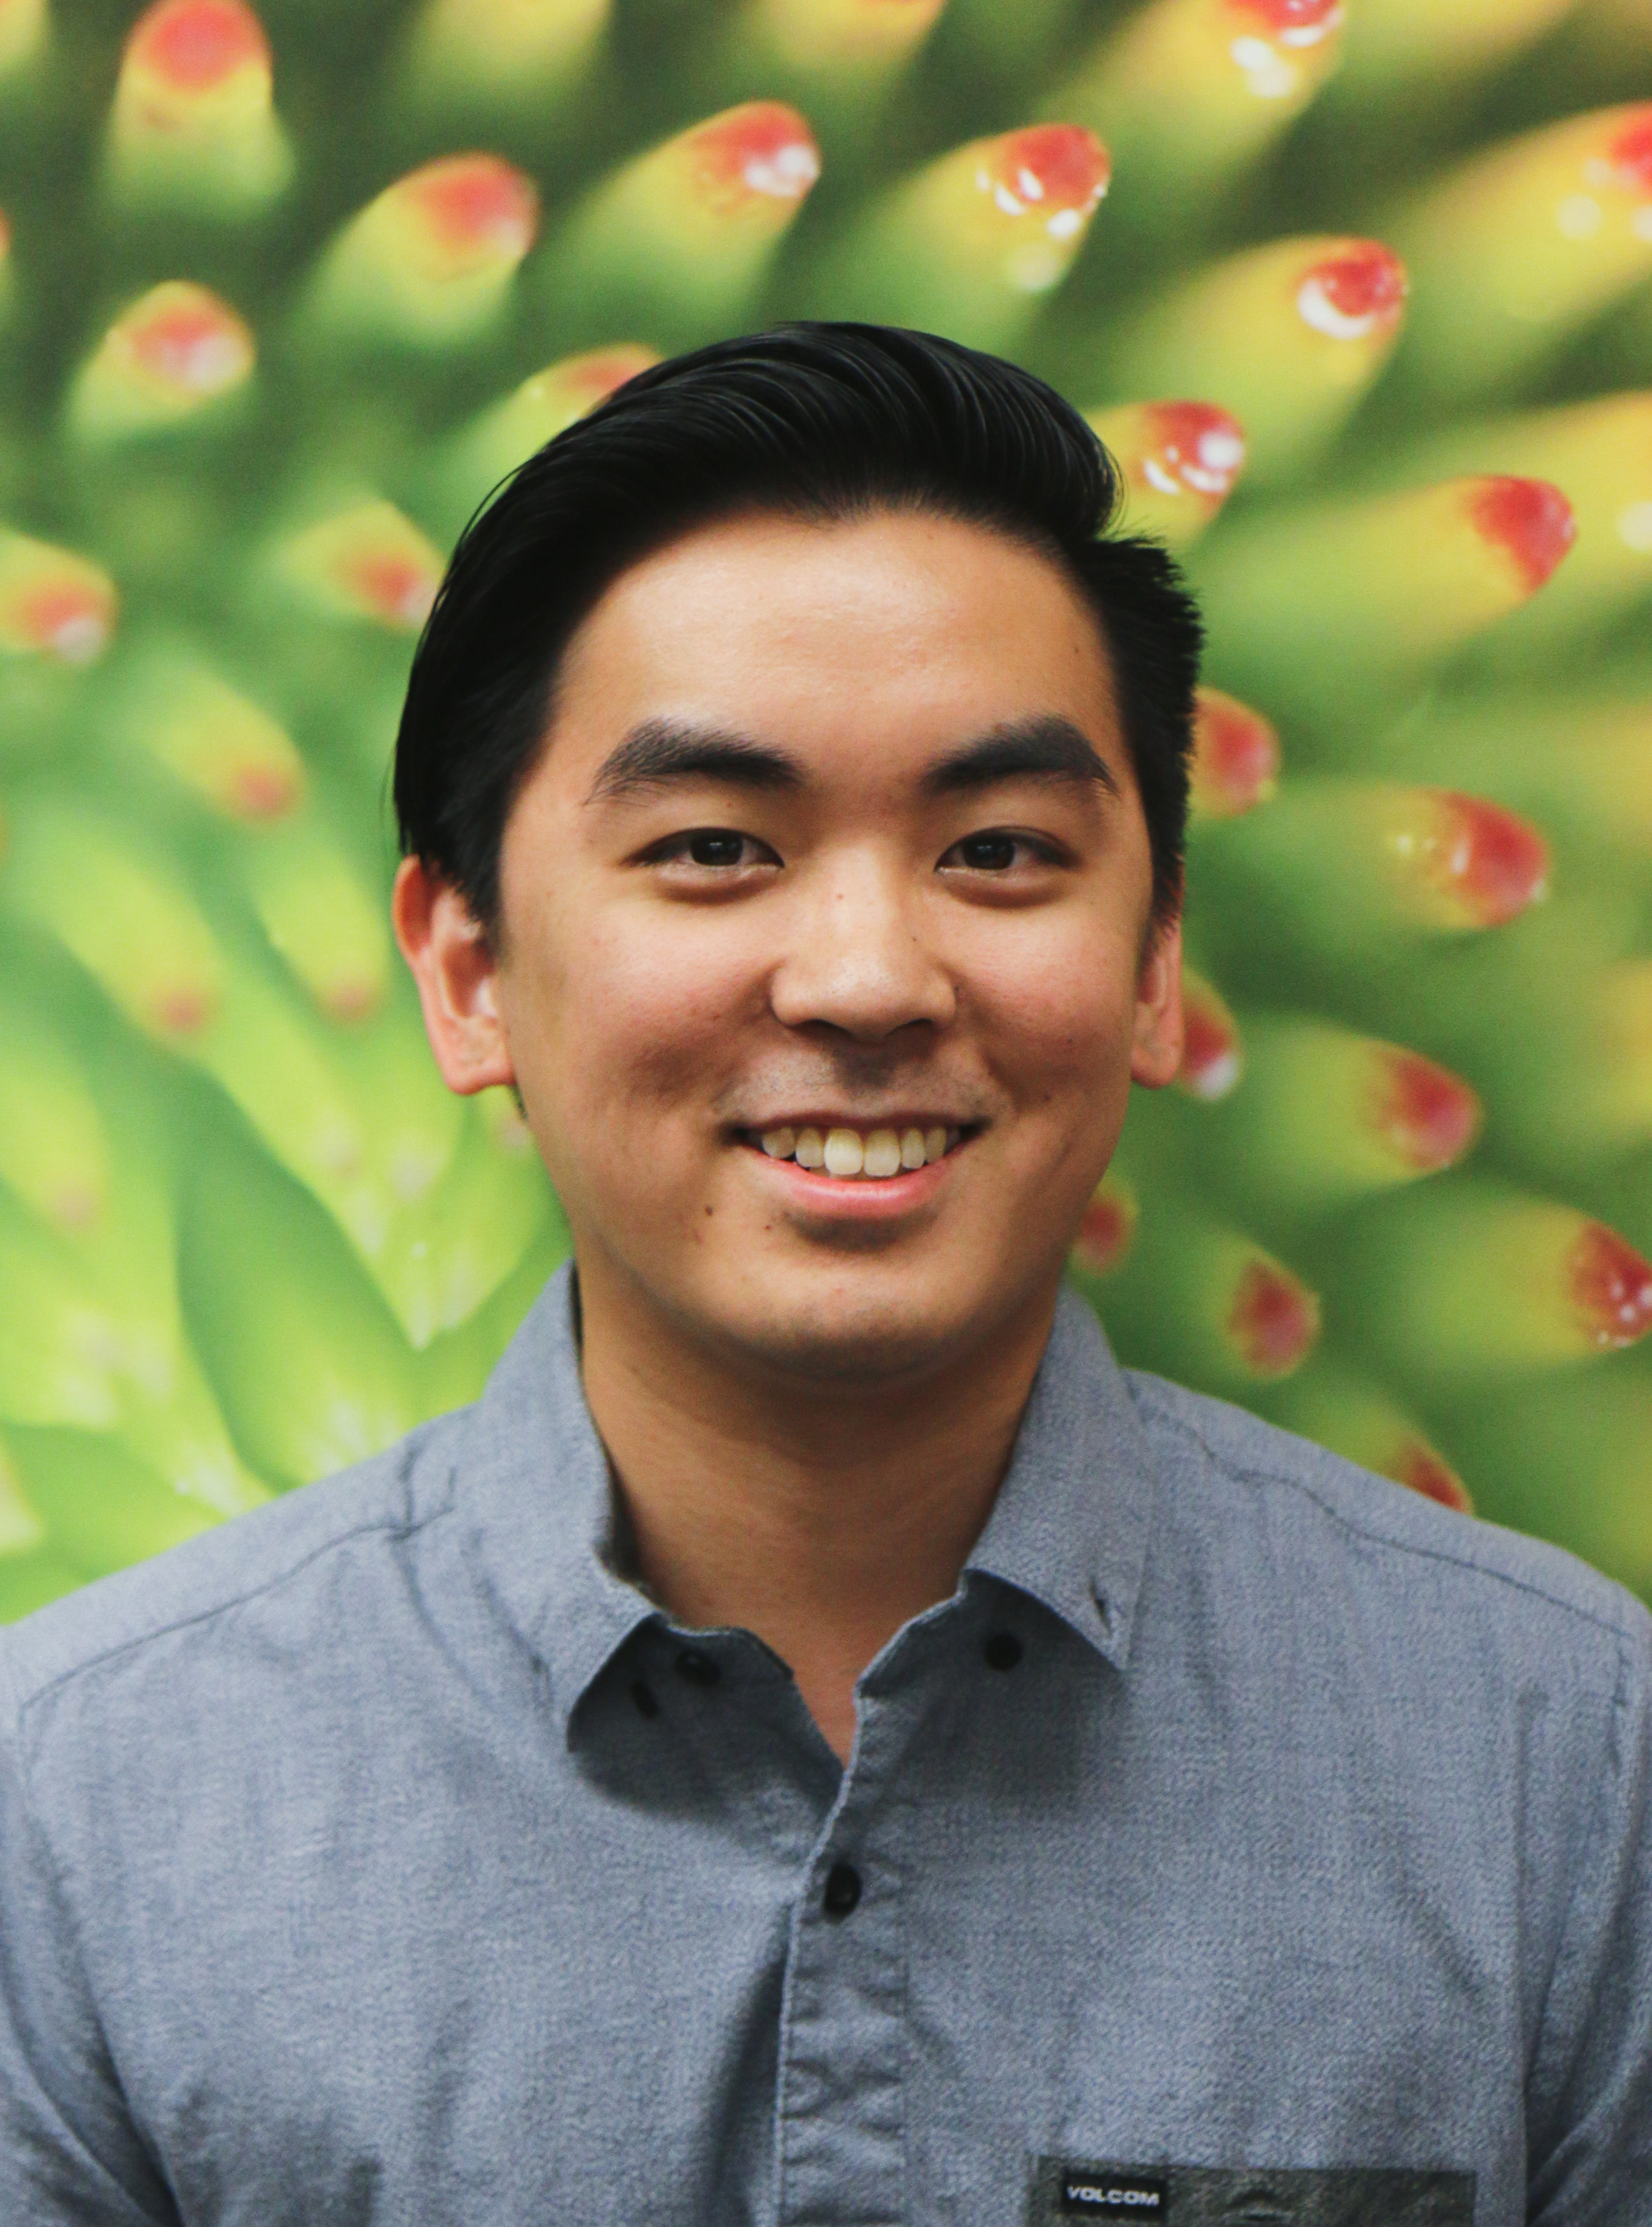 COMMUNICATIONS CO-CHAIR    Mitchell Inouye   Assistant Sales Manager EMSS    Why did you join Ad 2?   I first found out about Ad 2 when I was invited to the annual fundraiser and joined shortly after. It's been a great experience meeting other young professionals and learning more about the industry from them.